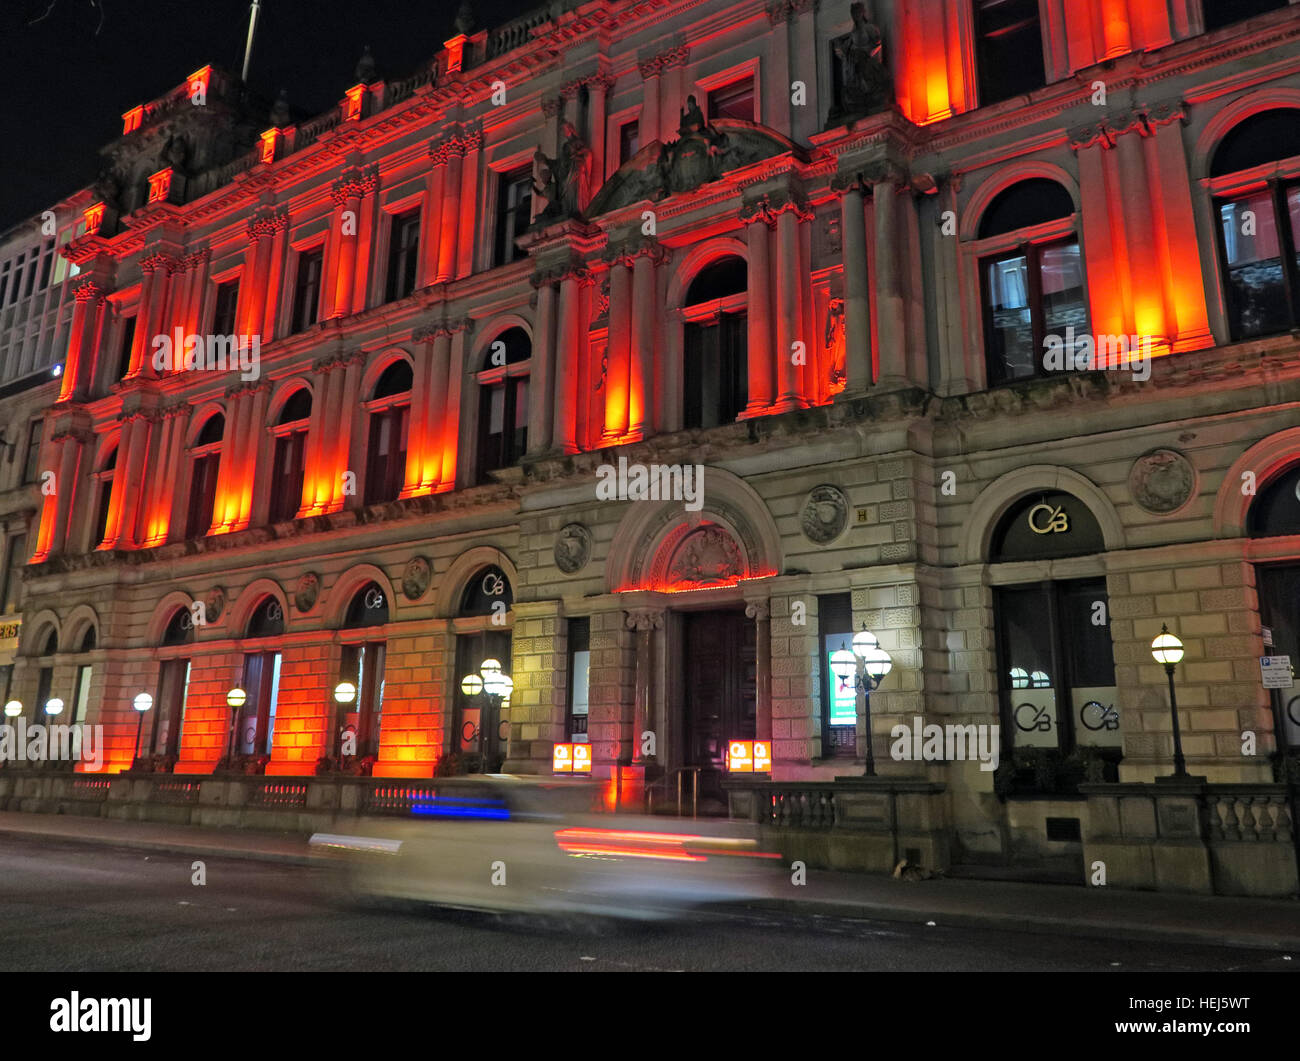 Clydesdale Bank Chambers at Night,Glasgow,near George Square, Scotland, UK Stock Photo